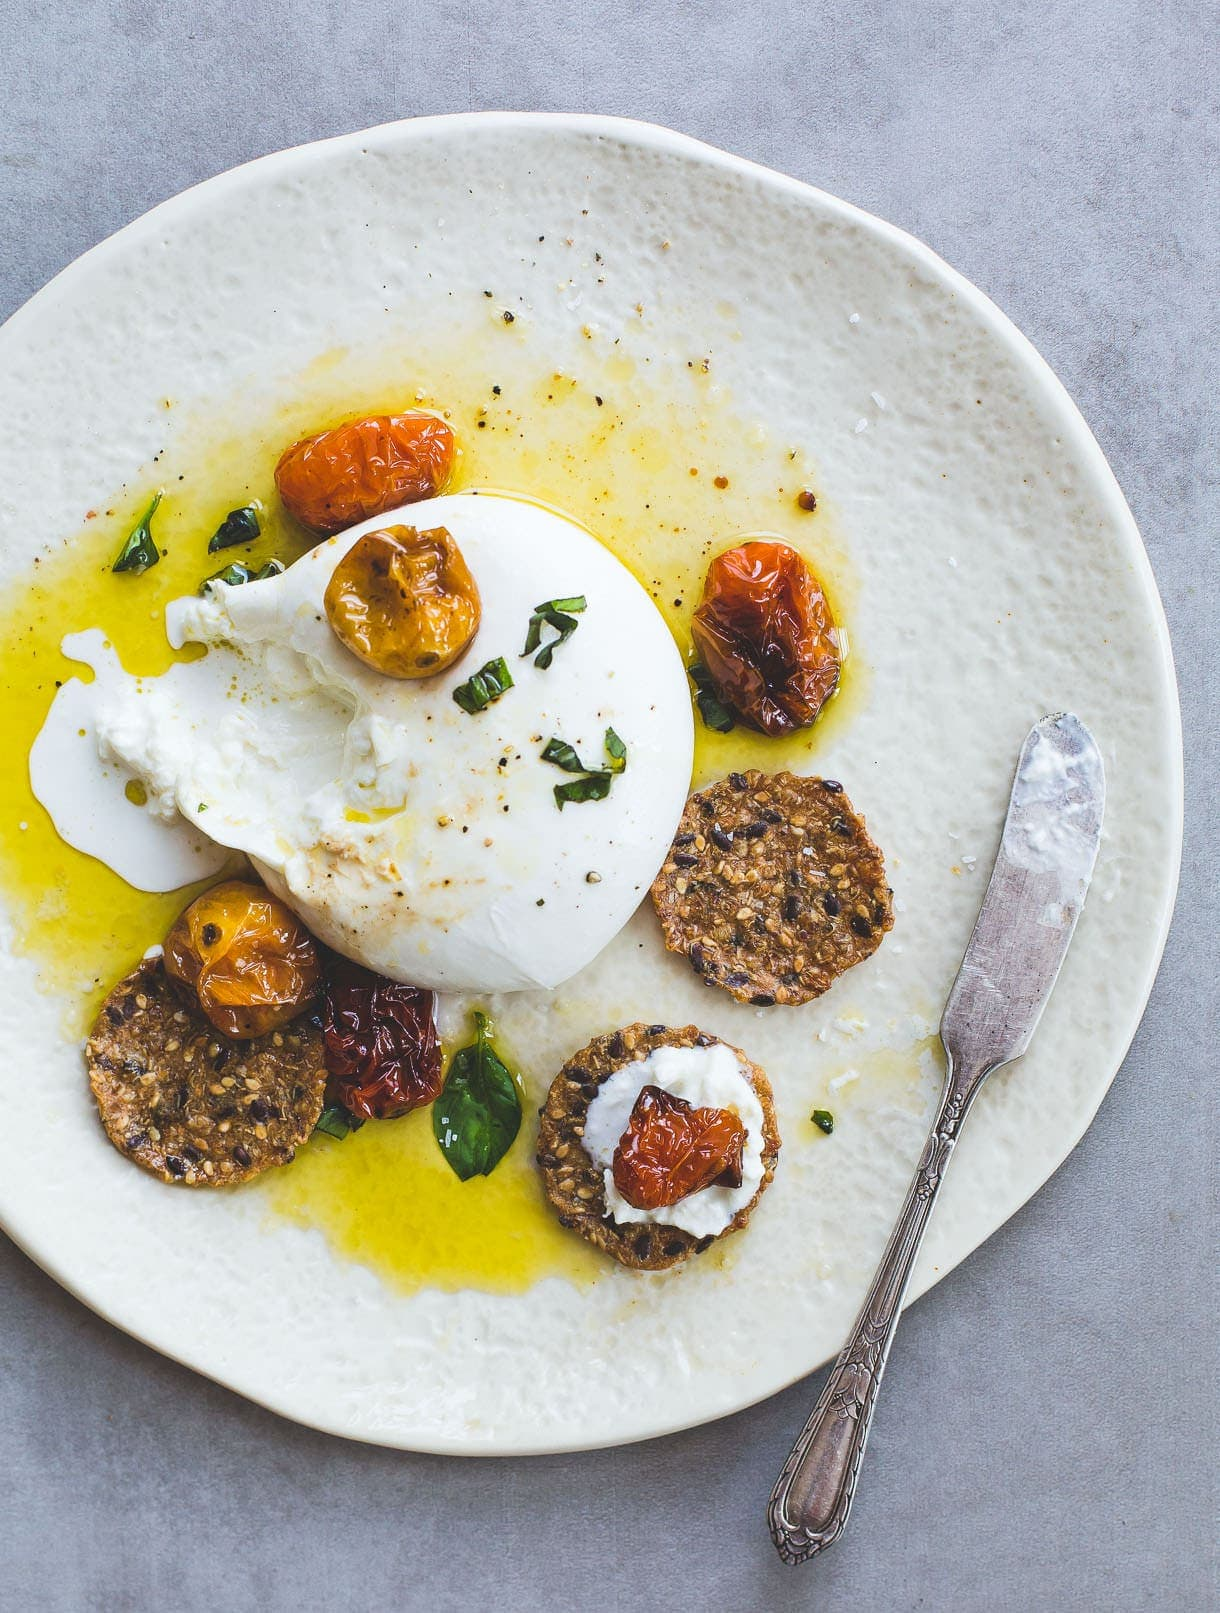 Creamy Burrata Cheese with Slow Roasted Tomatoes & Olive Oil